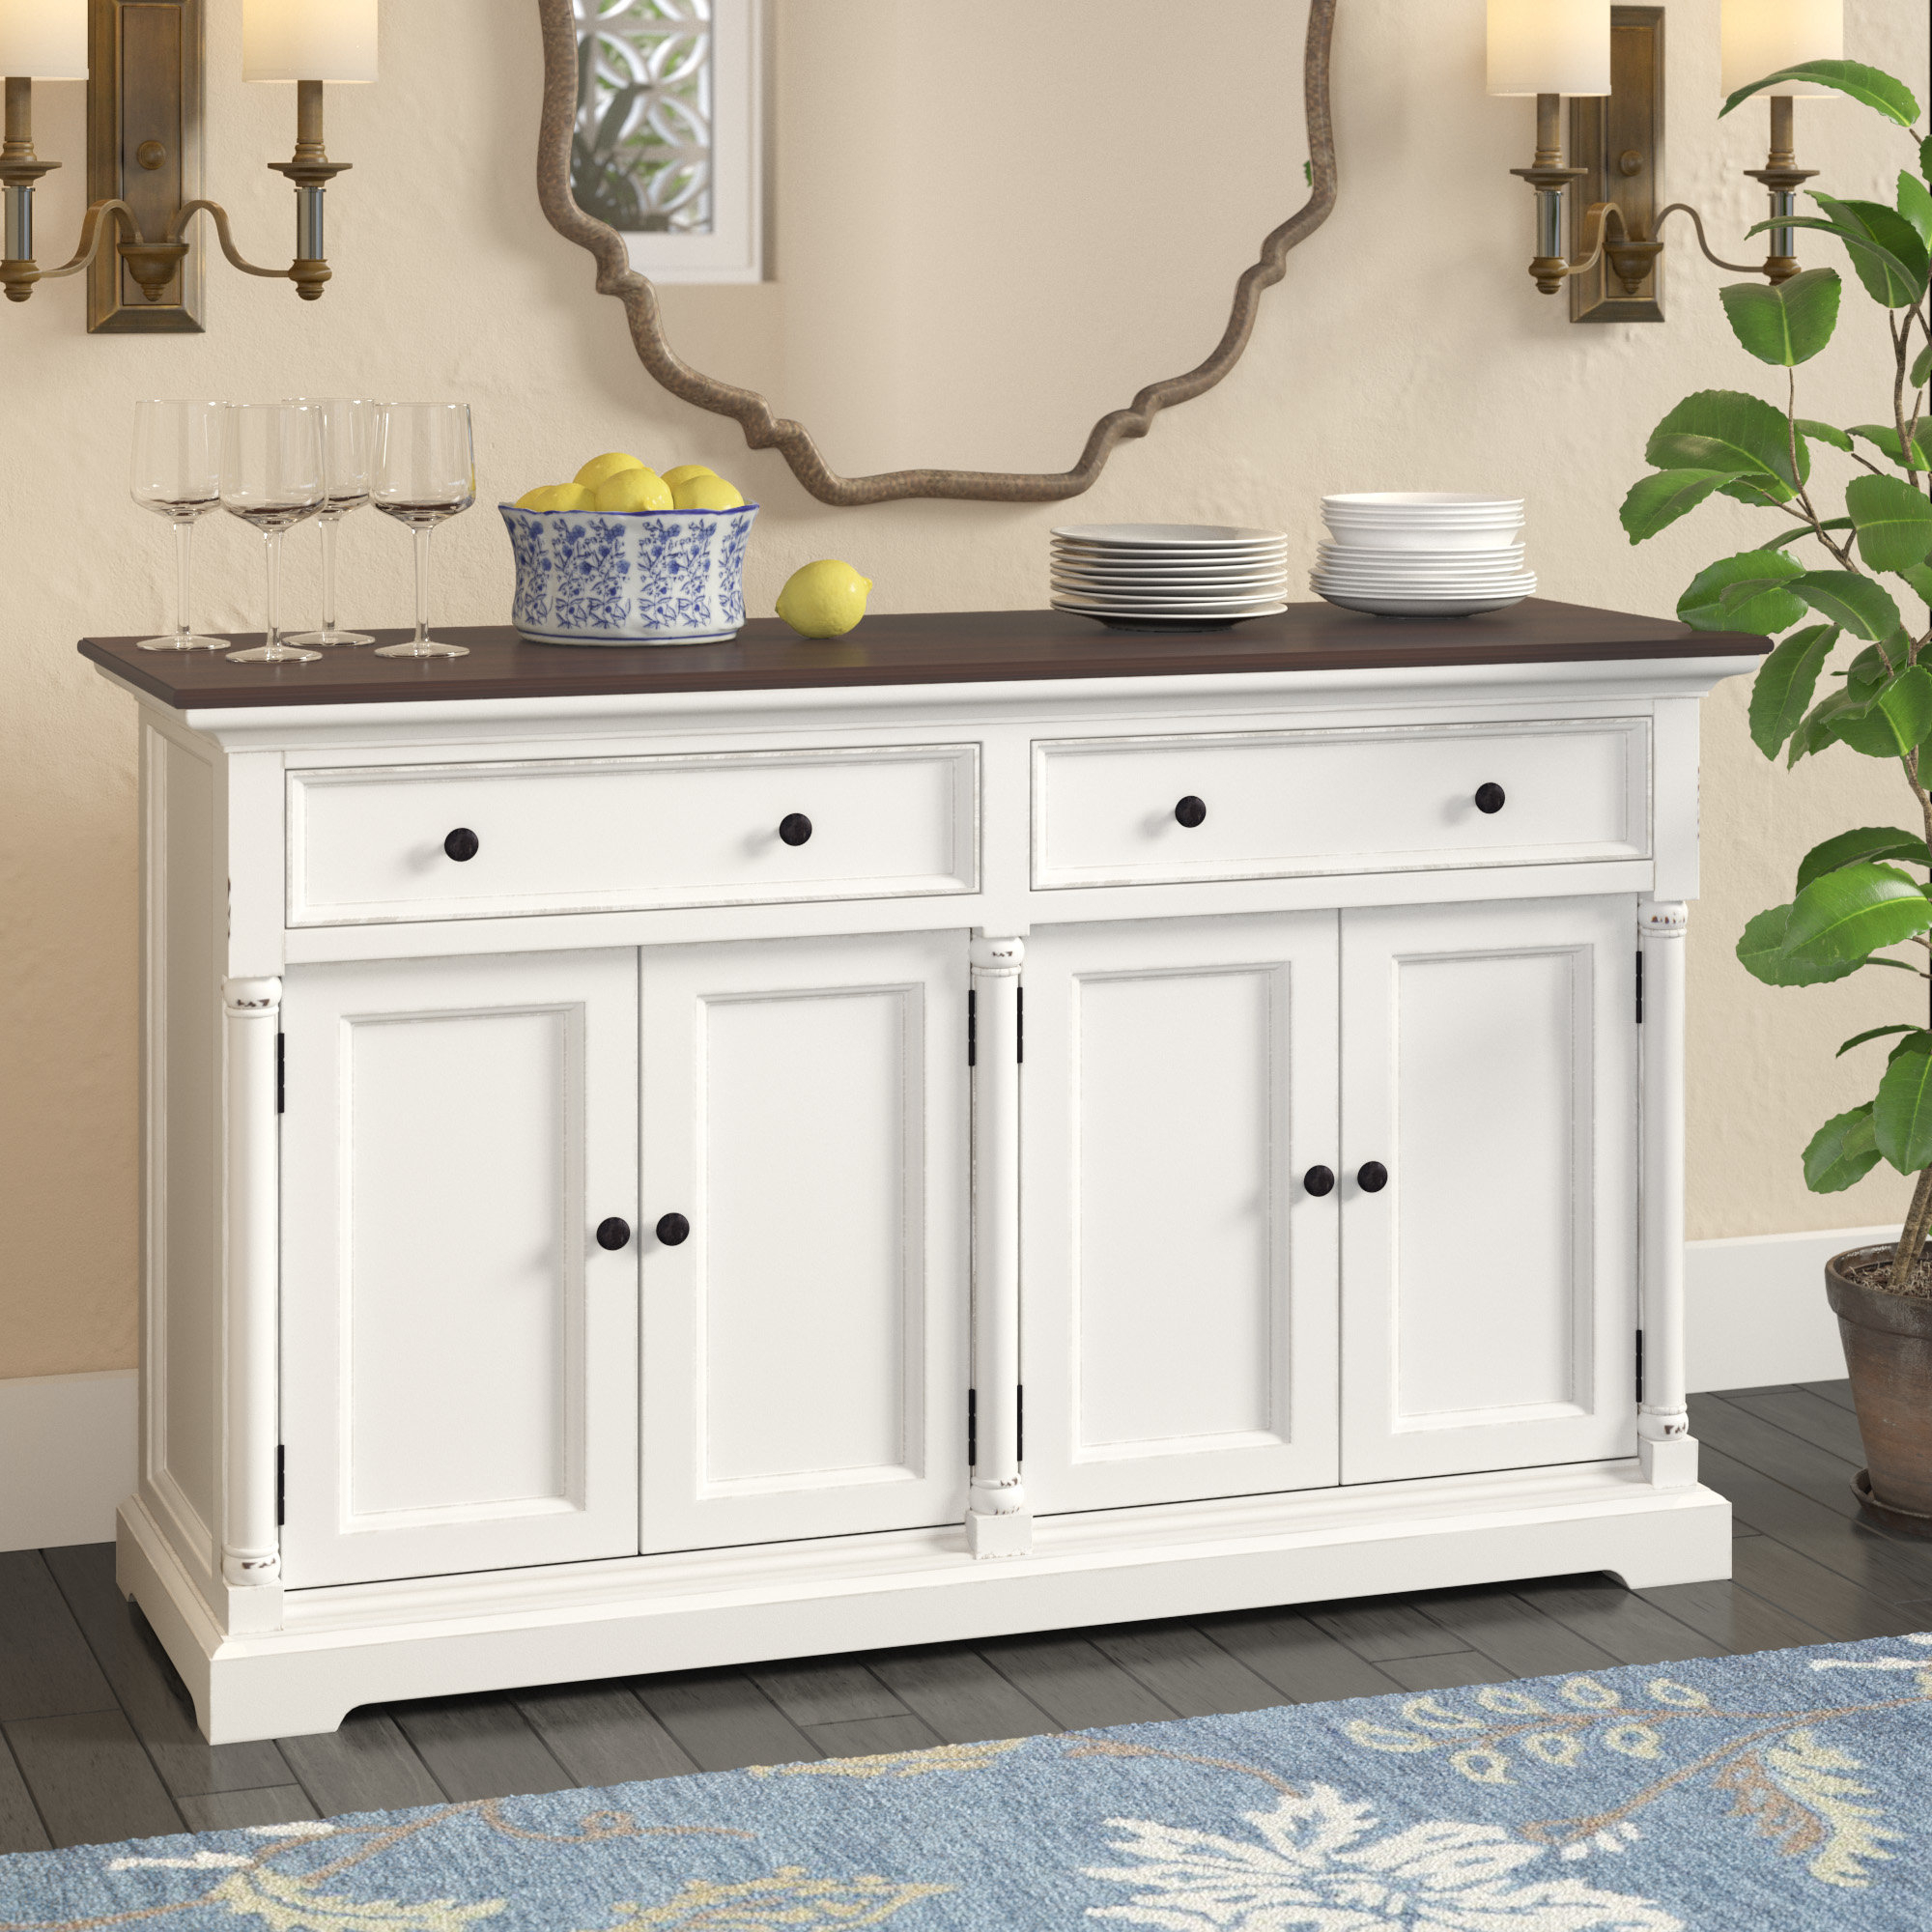 Westmont Sideboard With Regard To Latest Pineville Dining Sideboards (View 19 of 20)